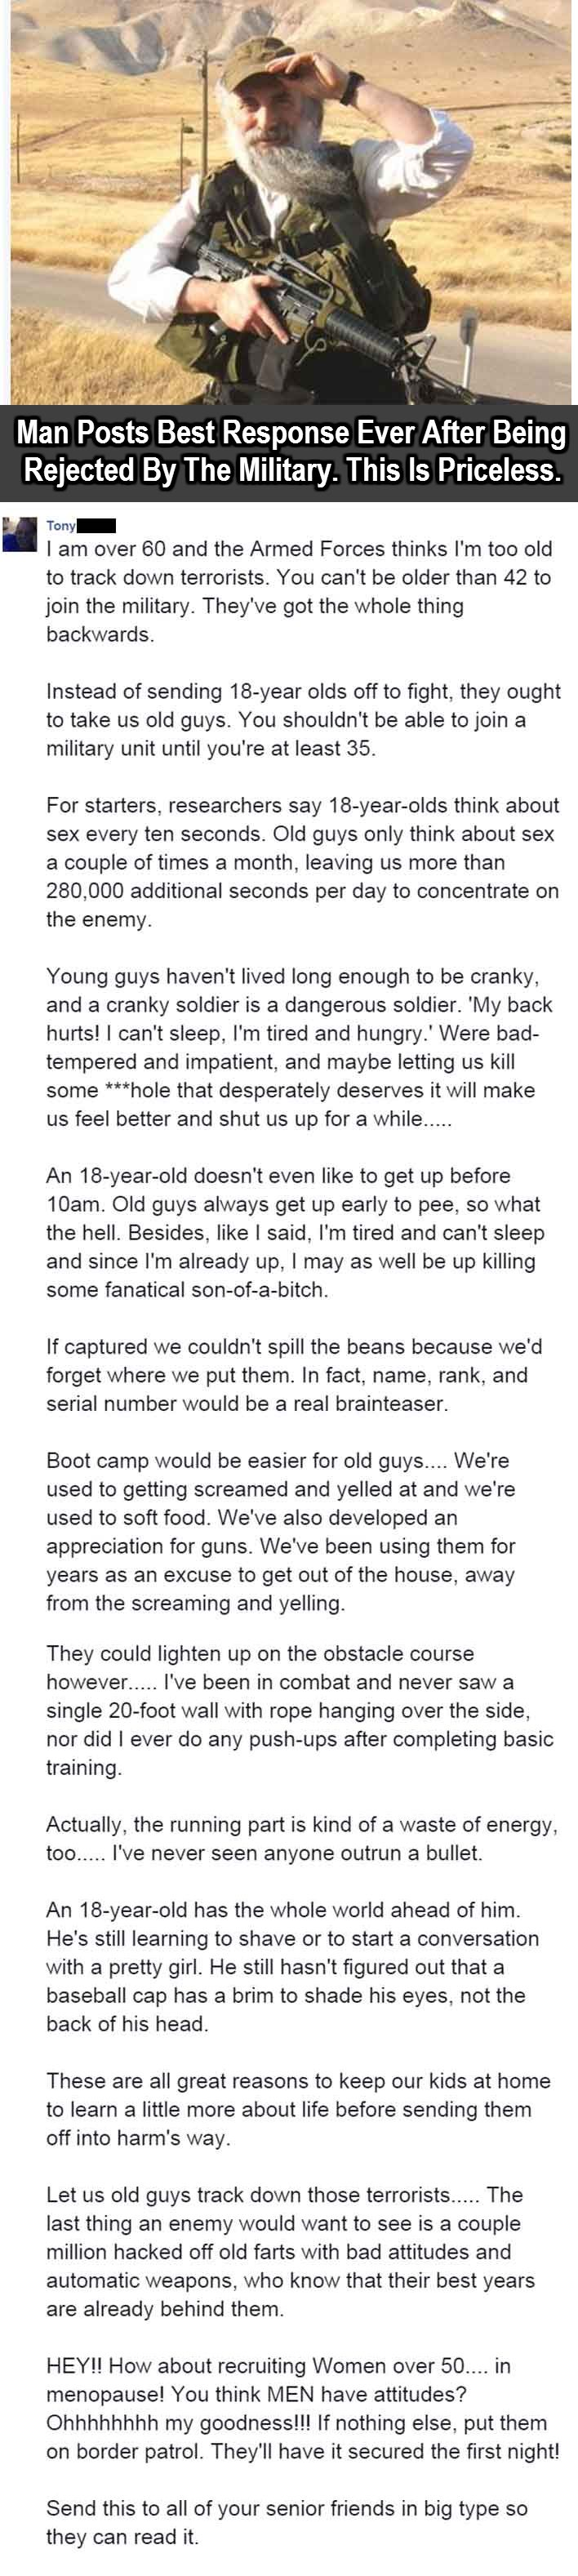 Man Posts Best Response Ever After Being Rejected By The Military. This Is Priceless.